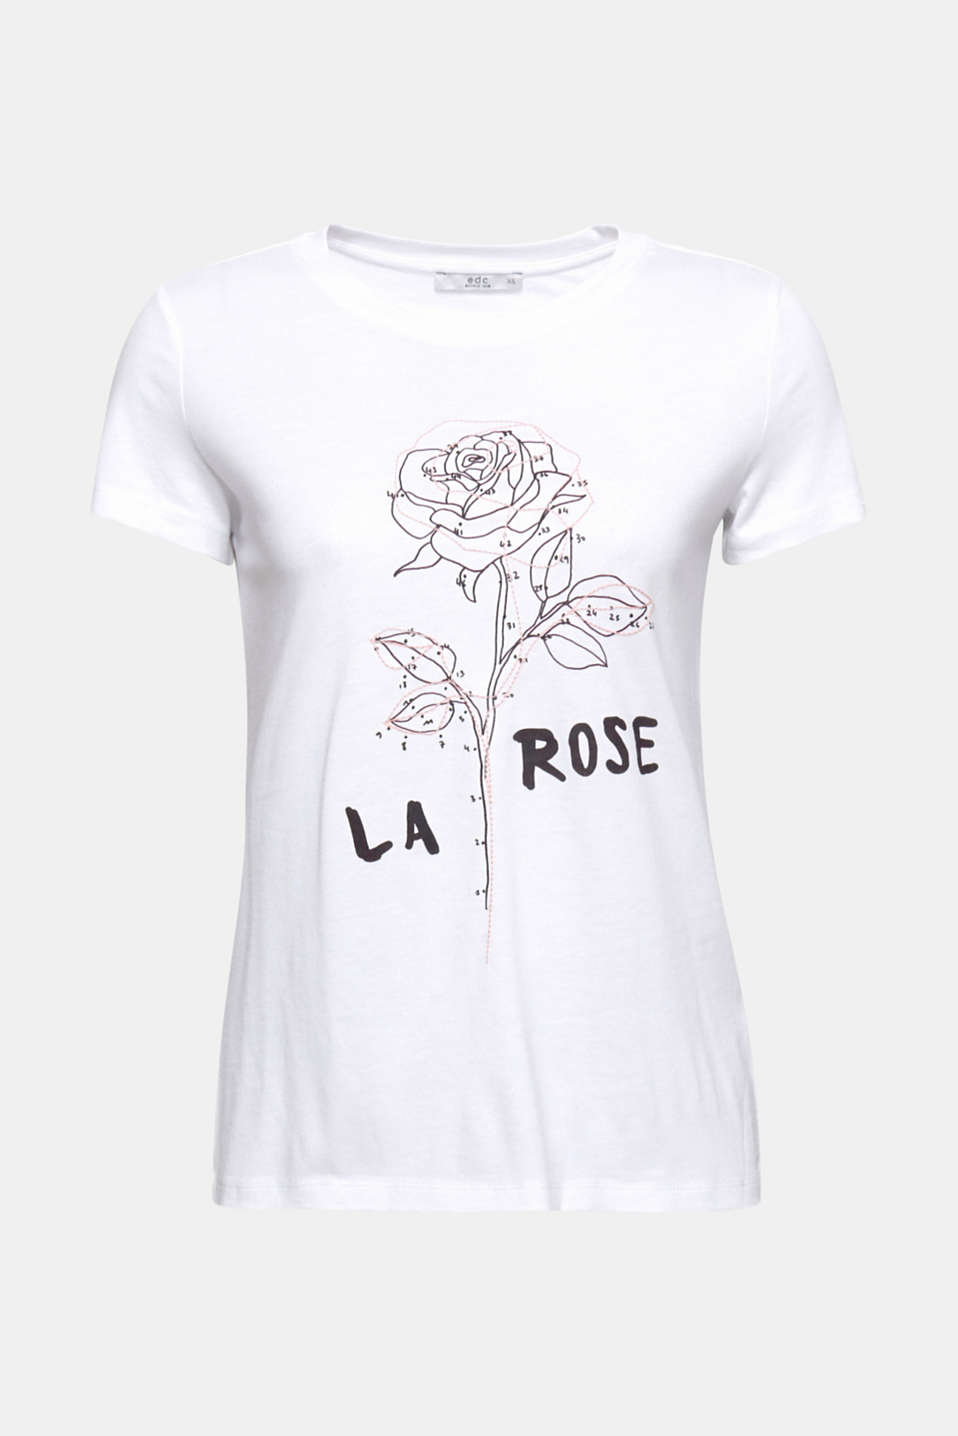 The finely embroidered rose print makes this round neckline T-shirt a romantic head-turner!